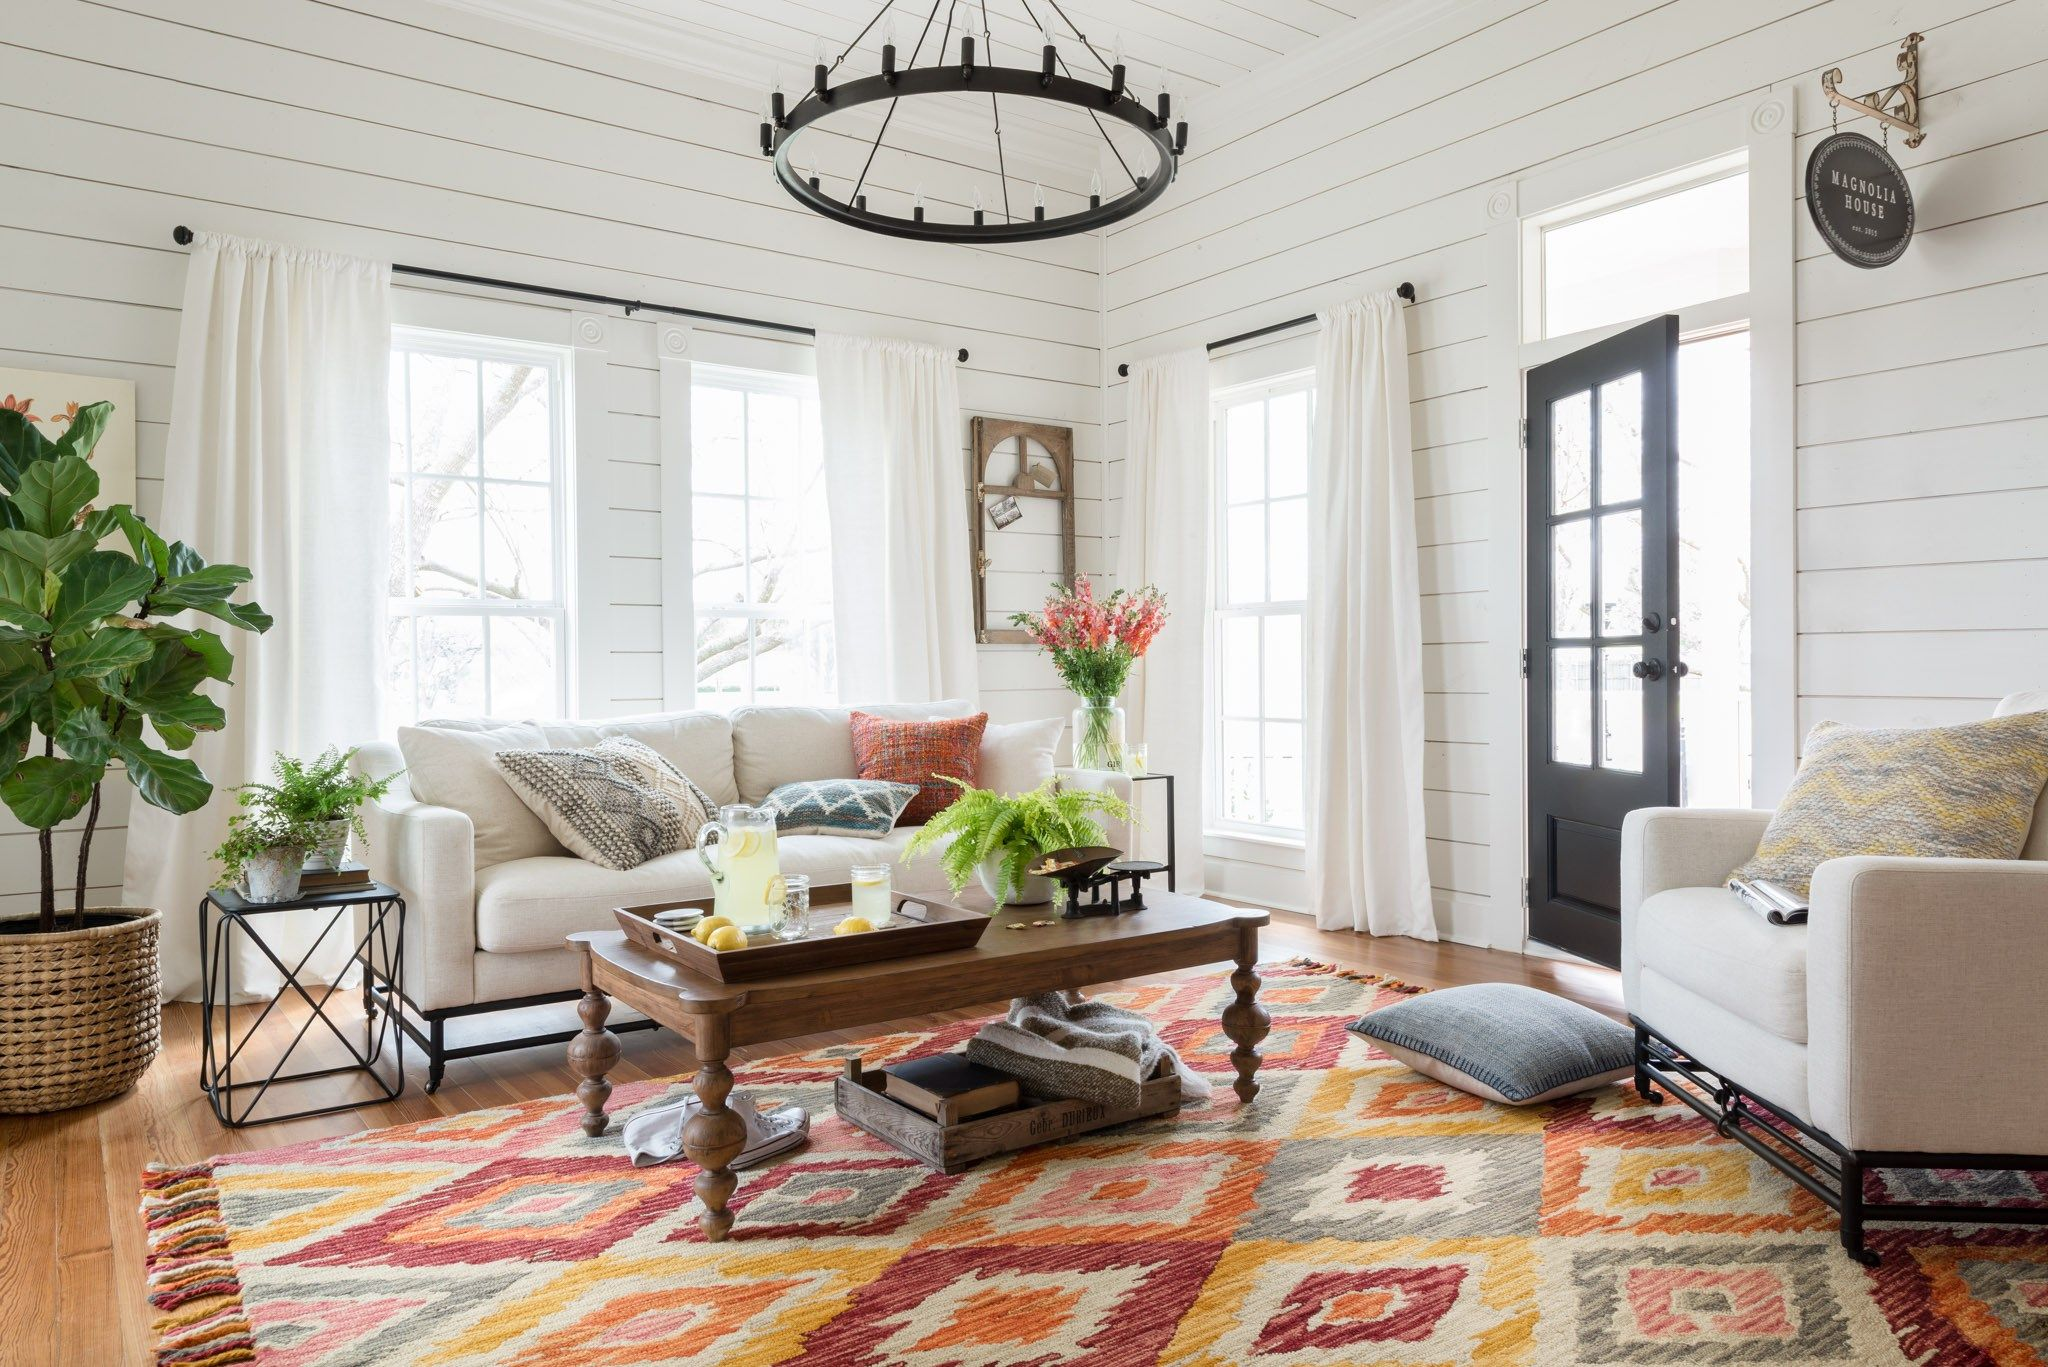 Magnolia Home Rugs By Joanna Gaines Are Now Available At Furniture Row Joanna Gaines Magnolia